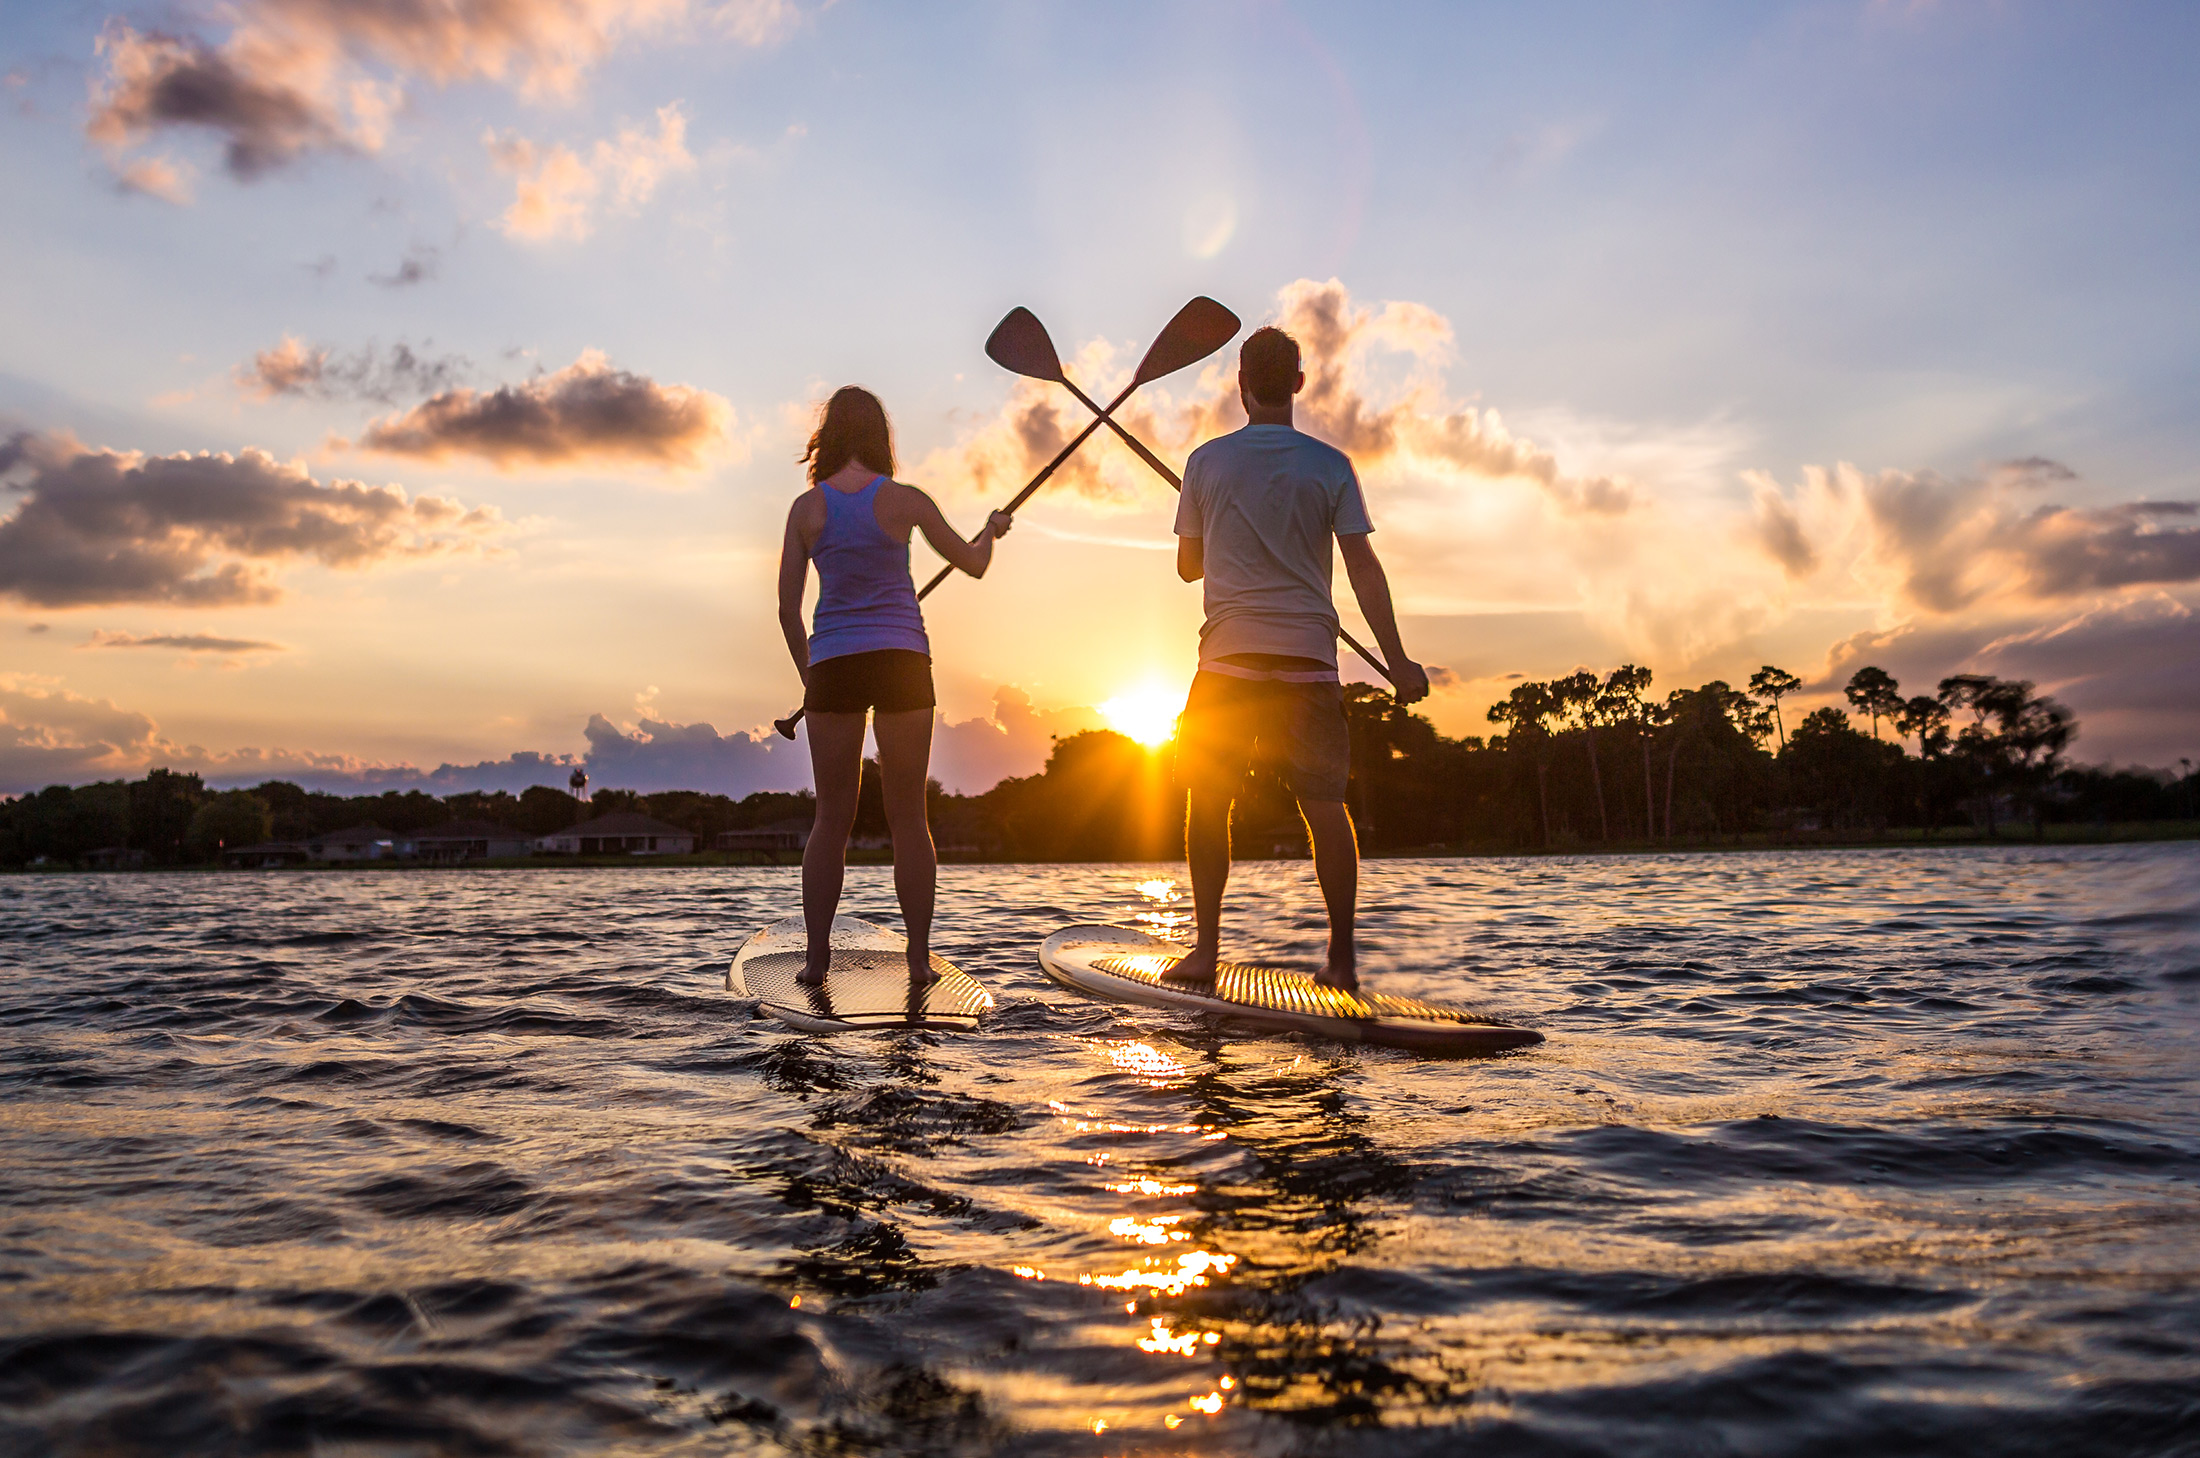 WH paddle boarding couple